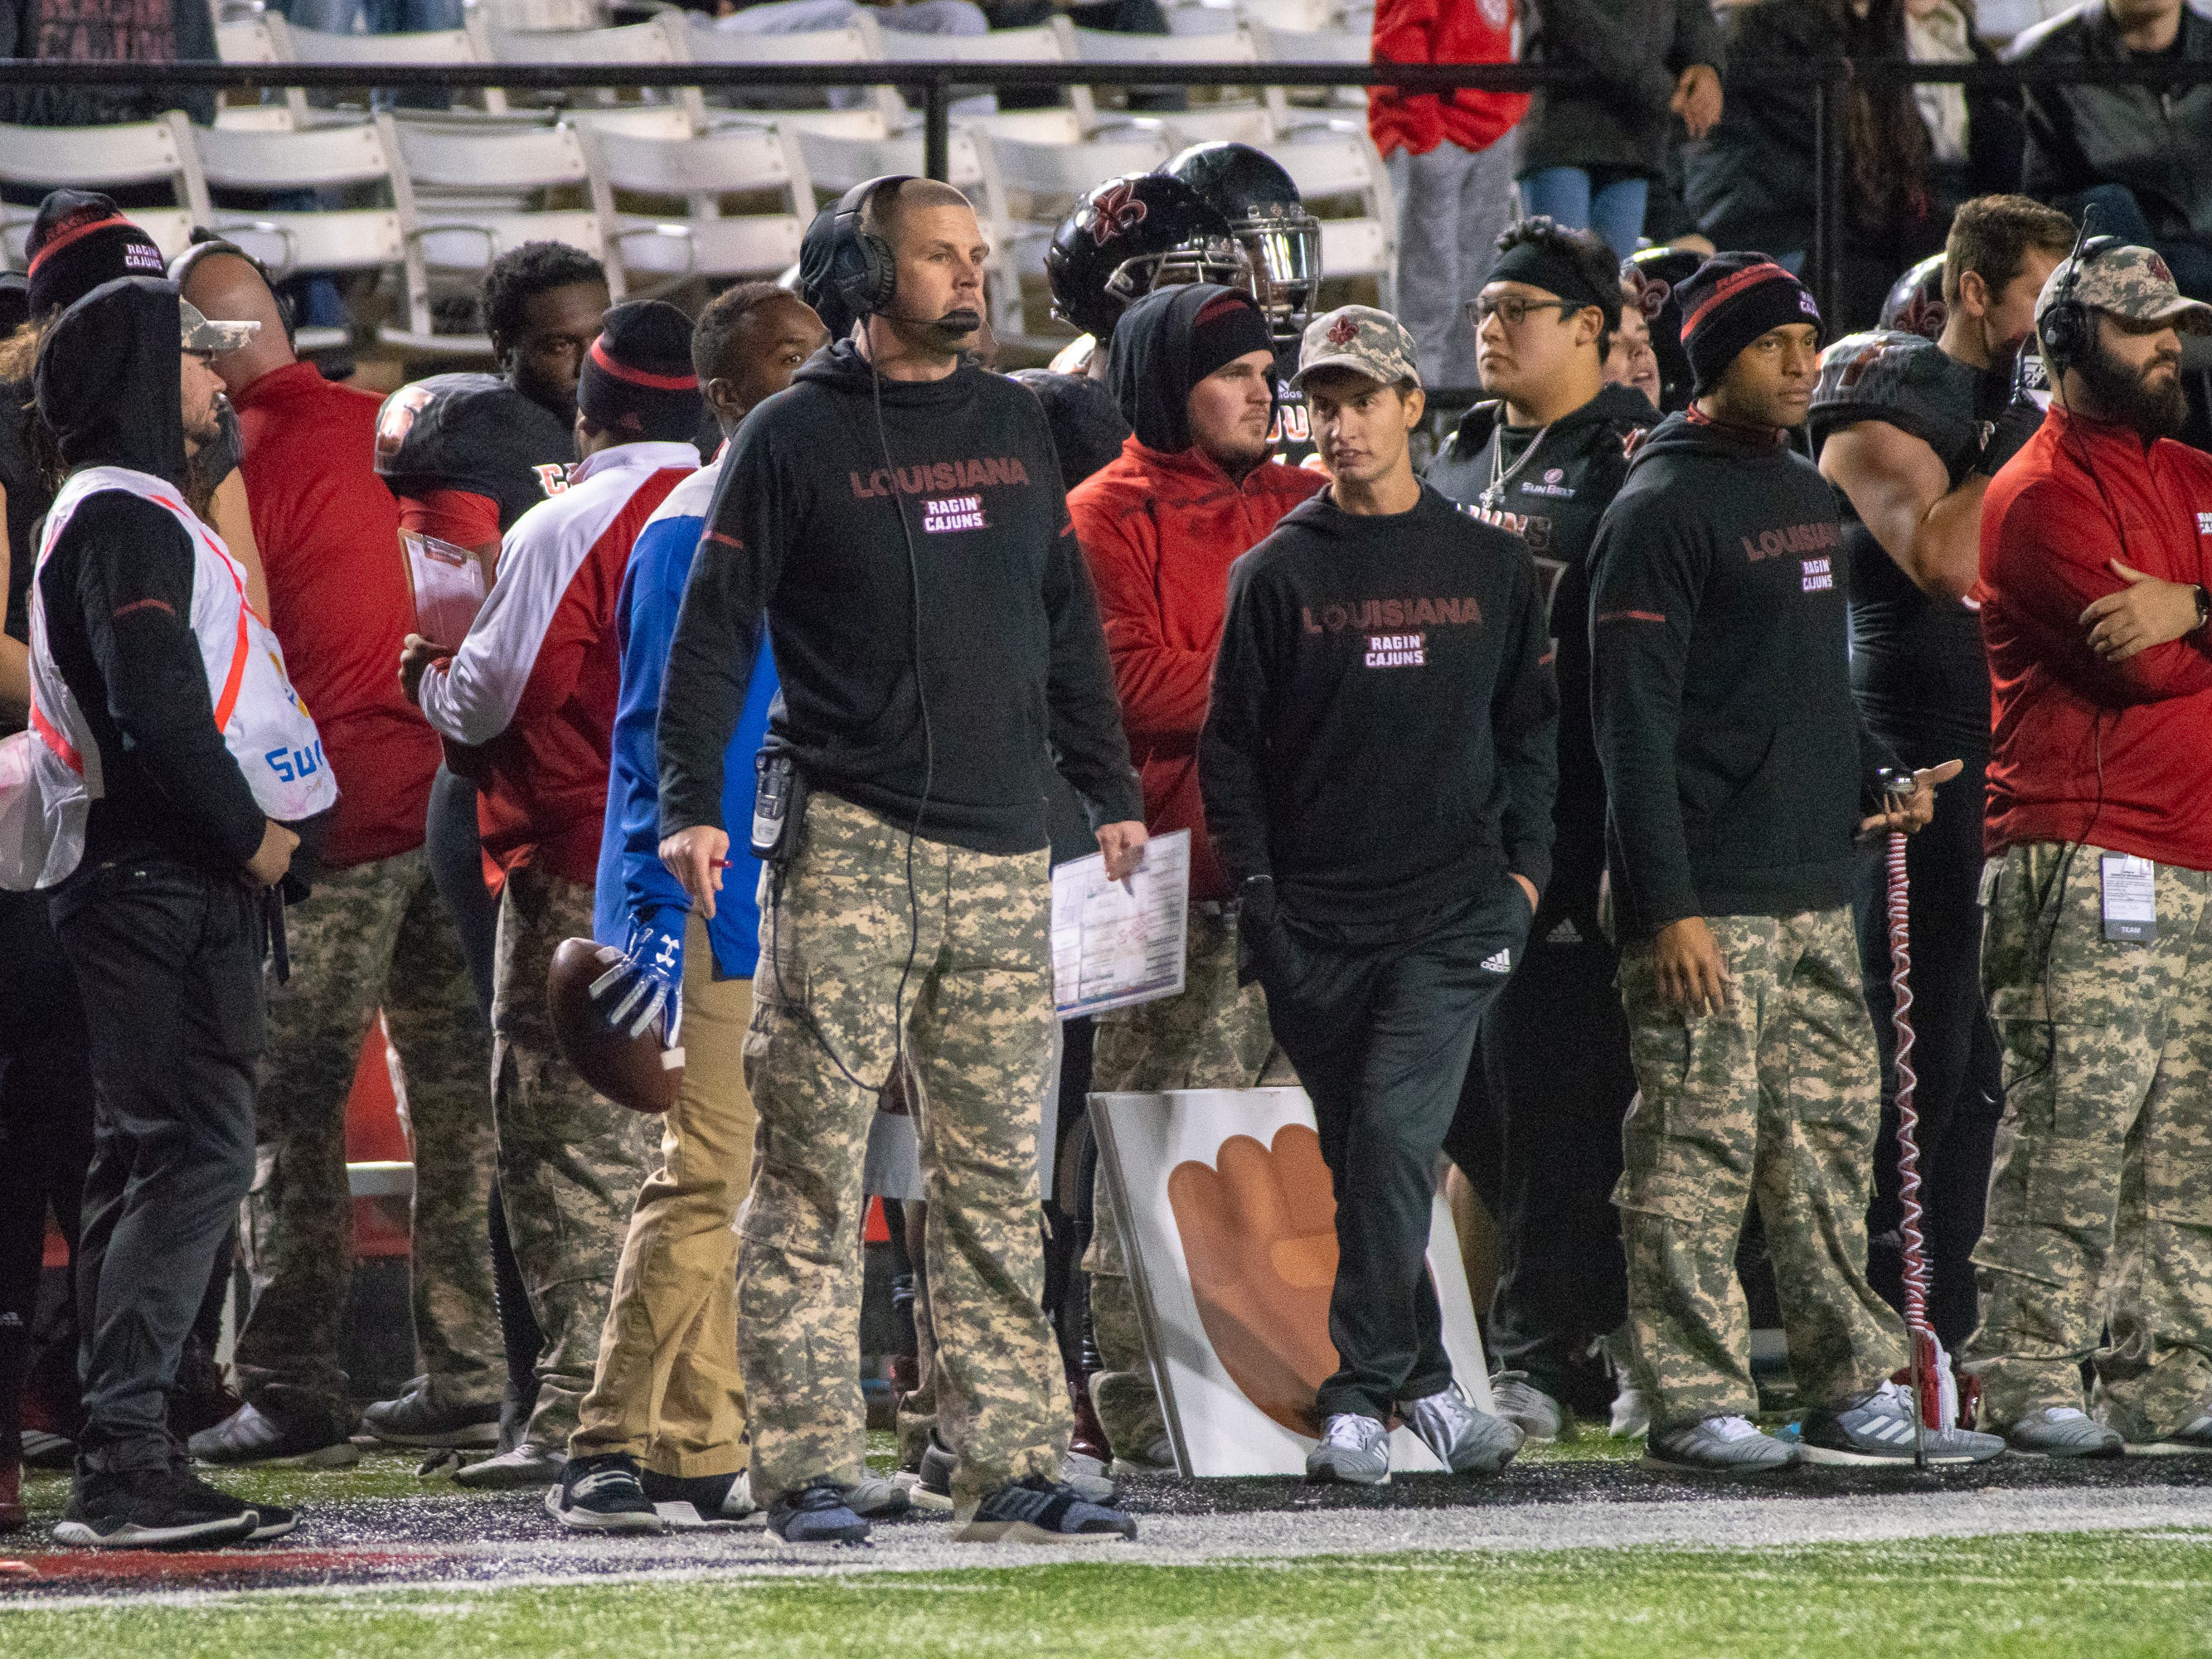 UL's head football coach Billy Napier watches the game from the sidelines as the Ragin' Cajuns play against the Georgia State Panthers at Cajun Field on Saturday Nov. 10, 2018.